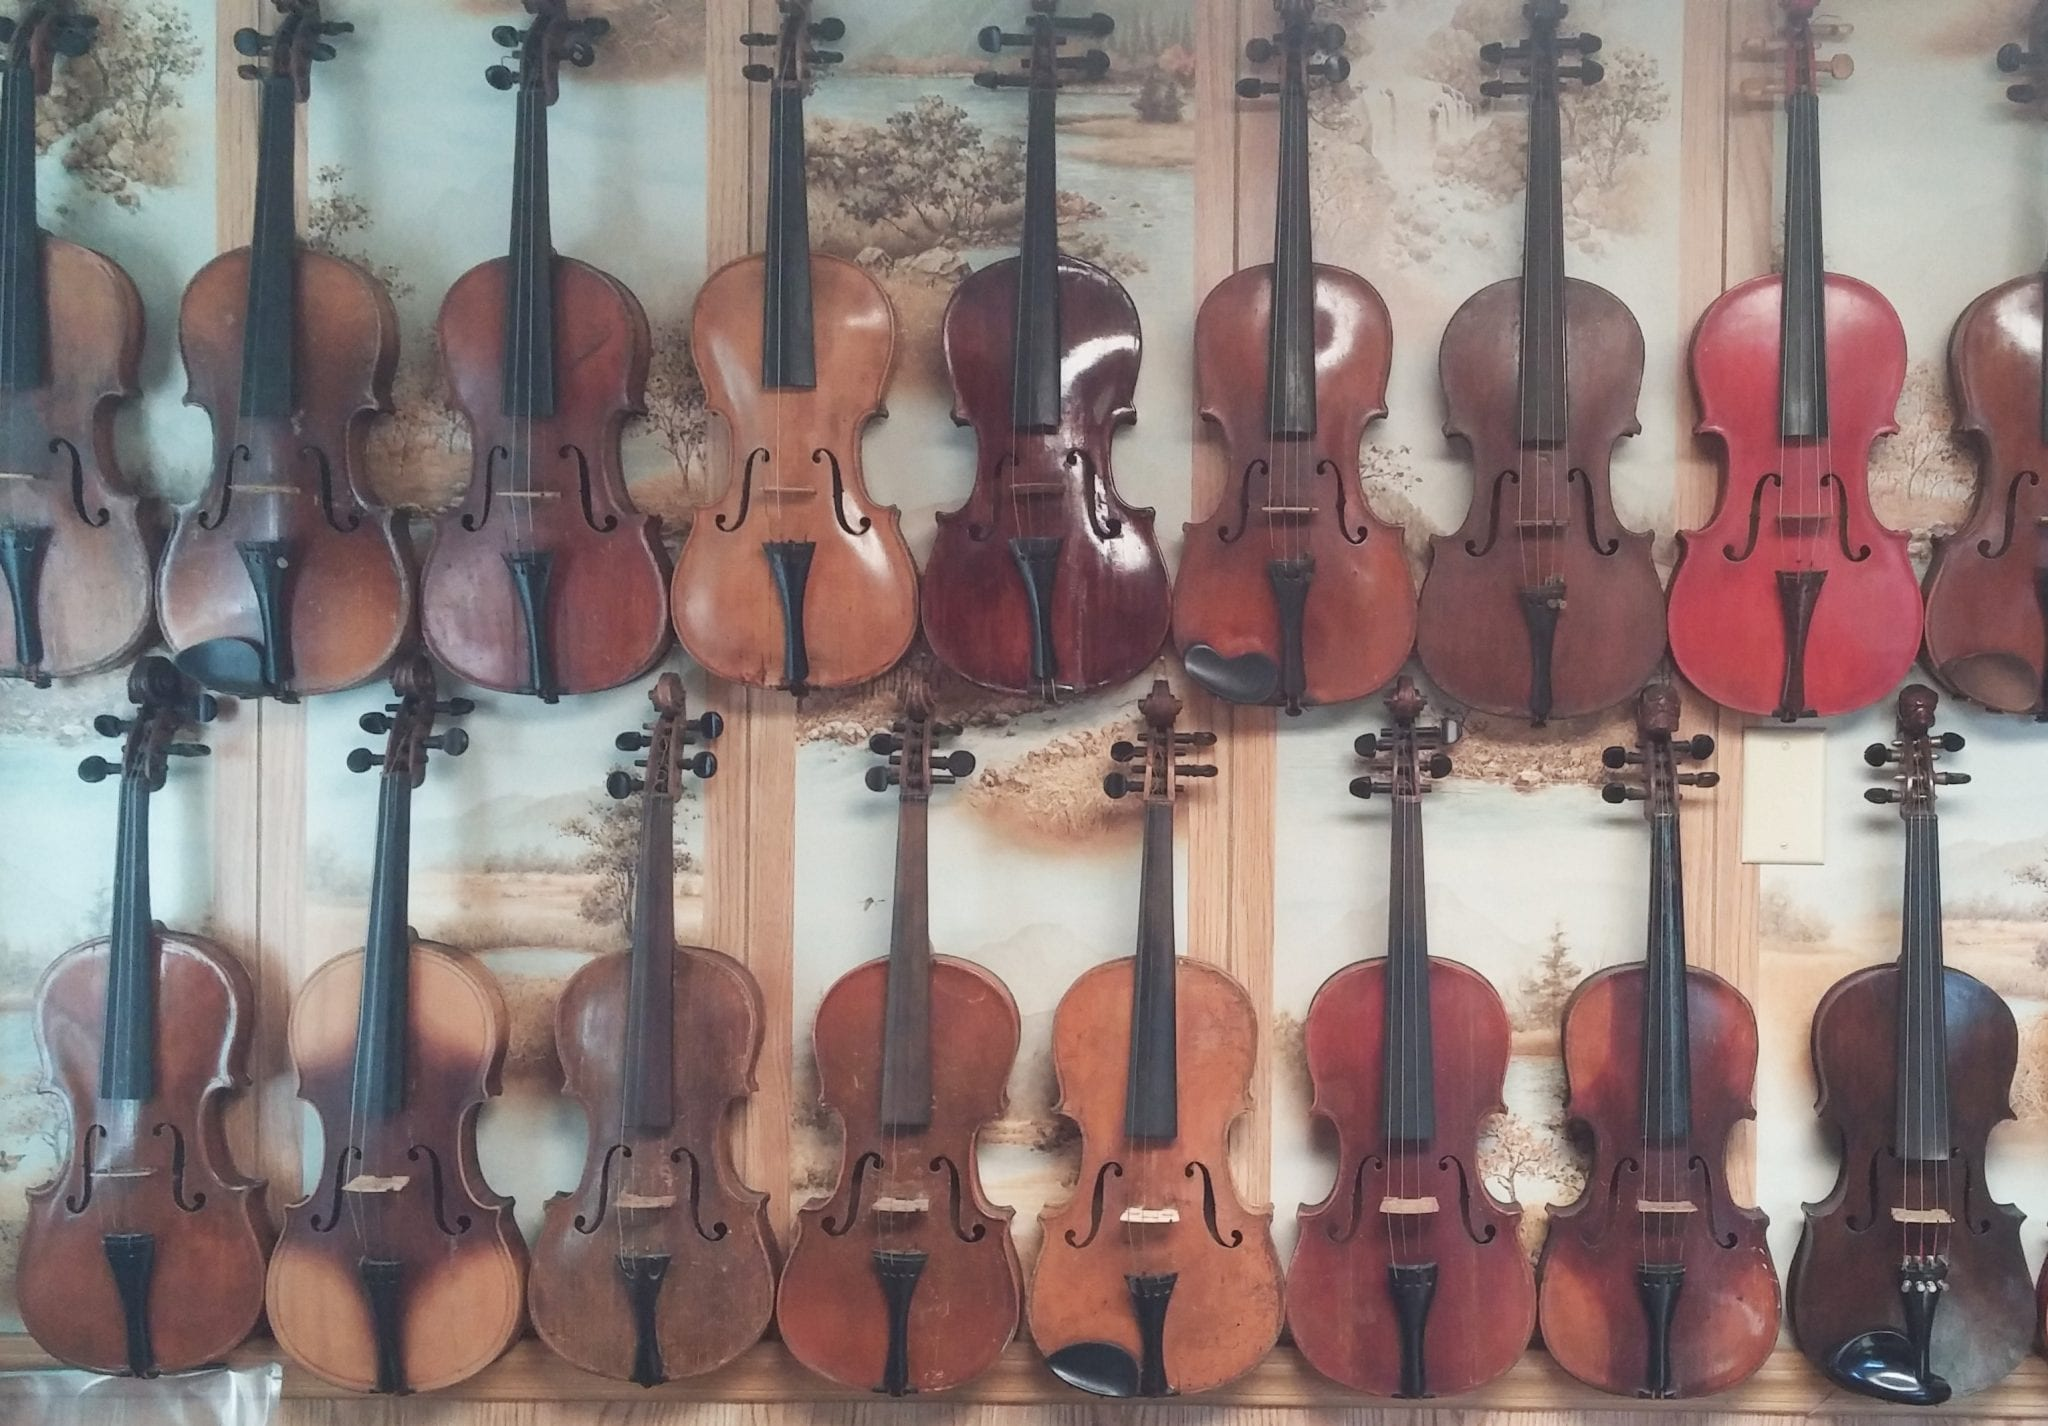 Fiddles from the personal collection of Rick Streeter